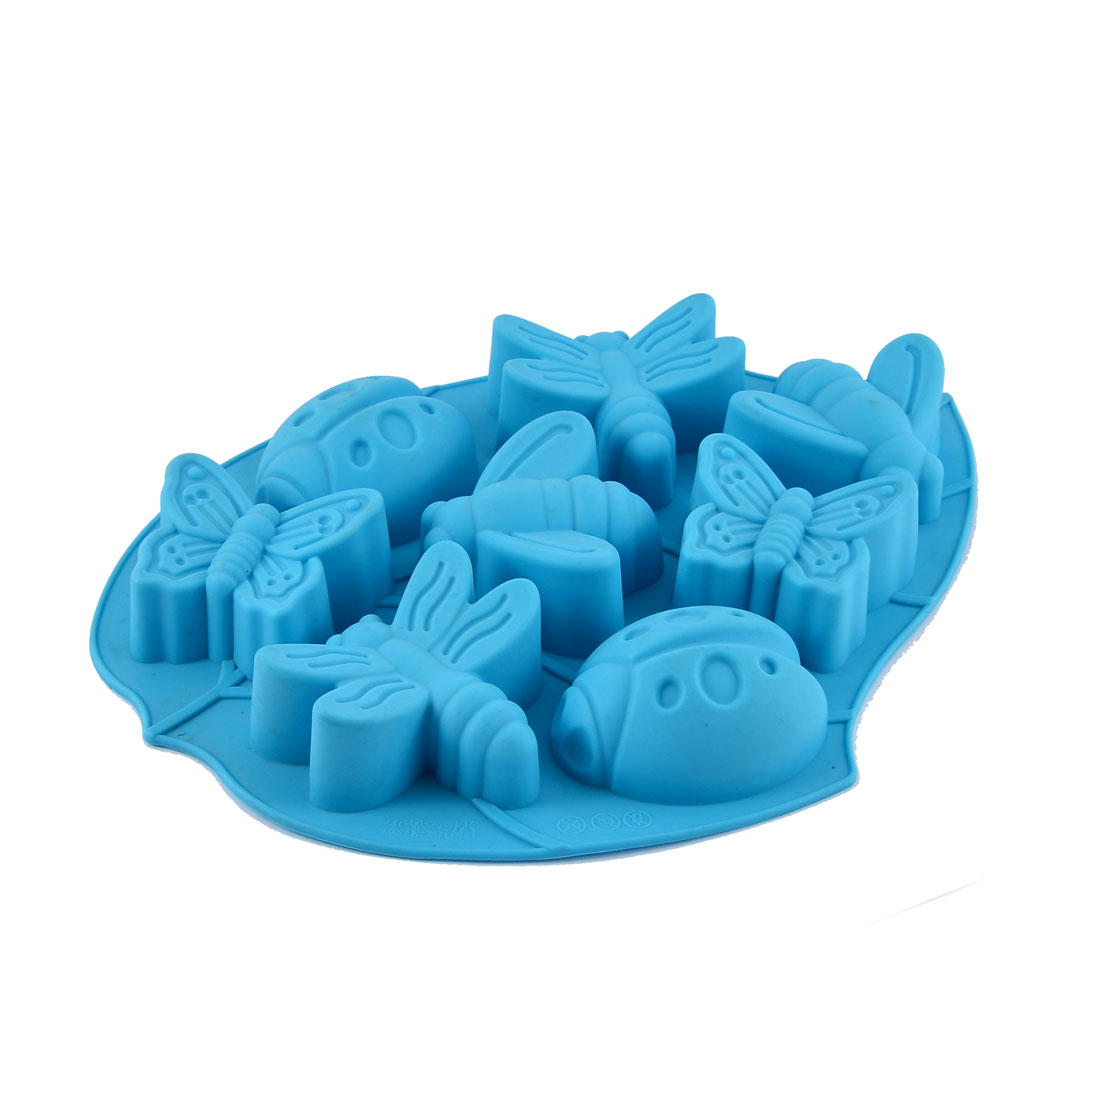 Silicone 8-Cavity Insects Shape Biscuit Pudding Cake Baking Cookie Mold Blue